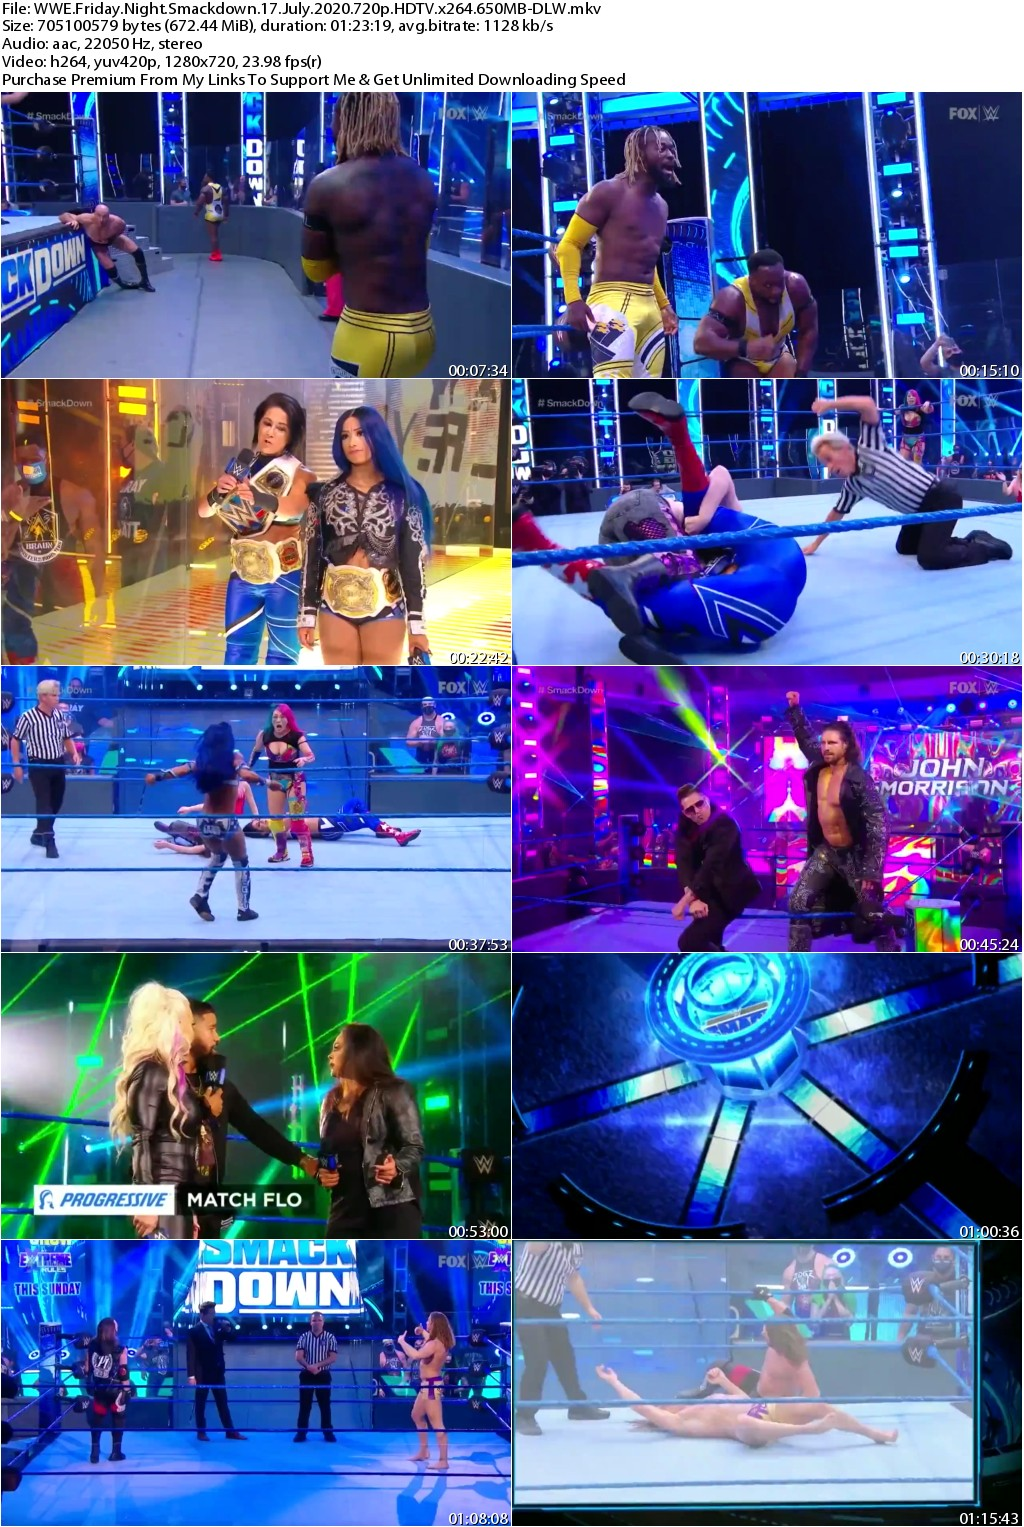 WWE Friday Night Smackdown 17 July 2020 720p HDTV x264 650MB-DLW